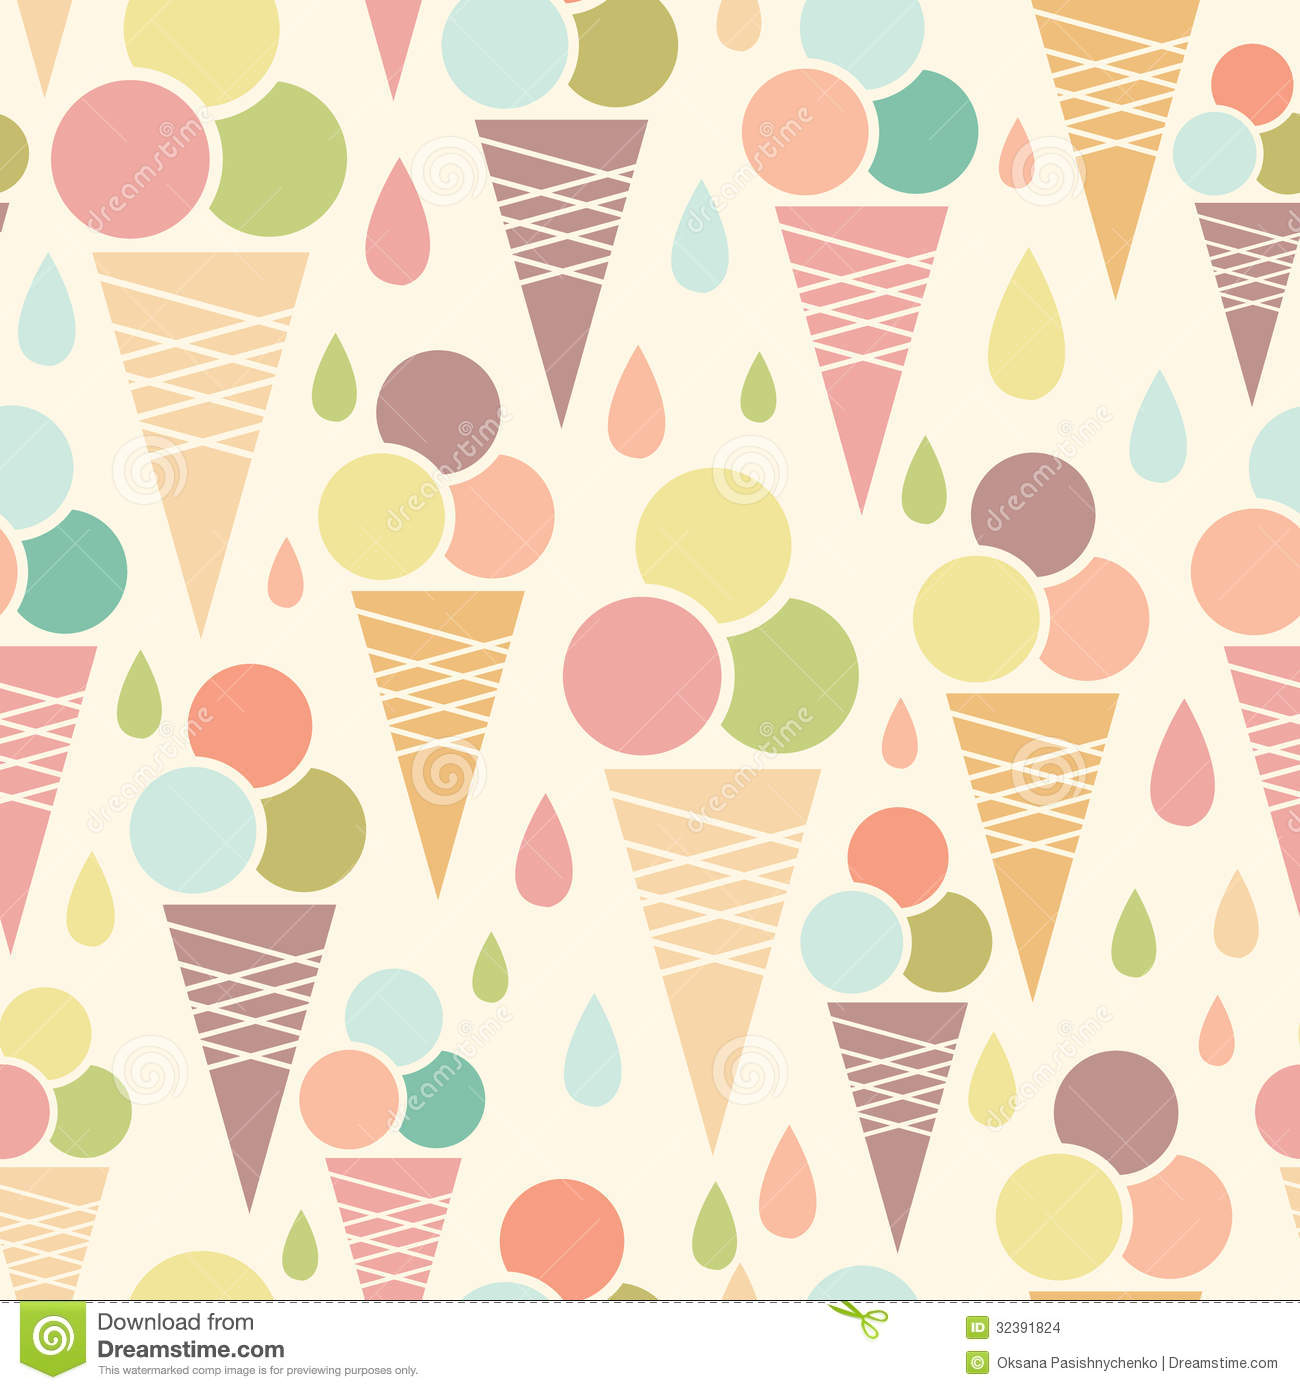 Ice Cream Cones Background Royalty Free Vector Image: Ice Cream Cones Seamless Pattern Background Stock Images